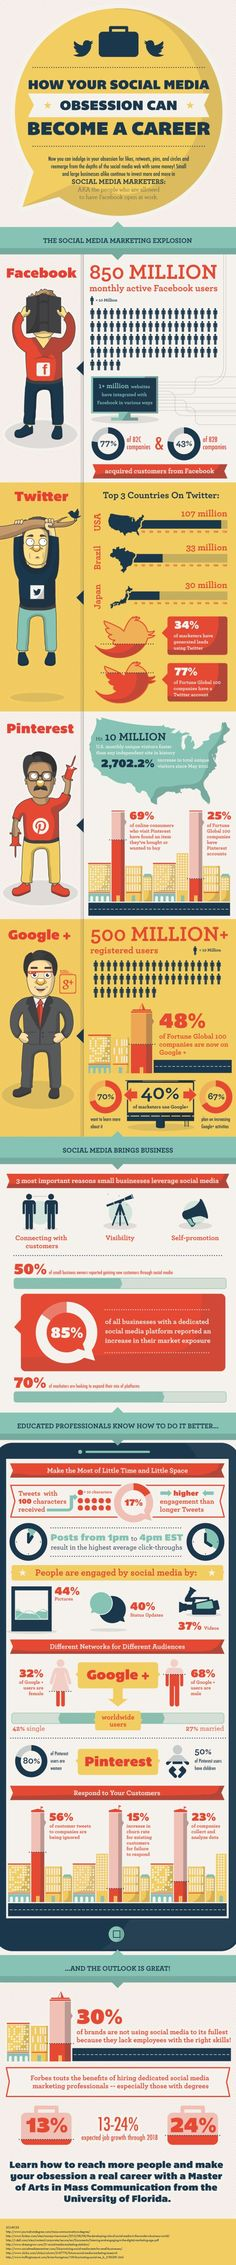 Infographic: Could your social media obsession lead to a career? | Articles | Main